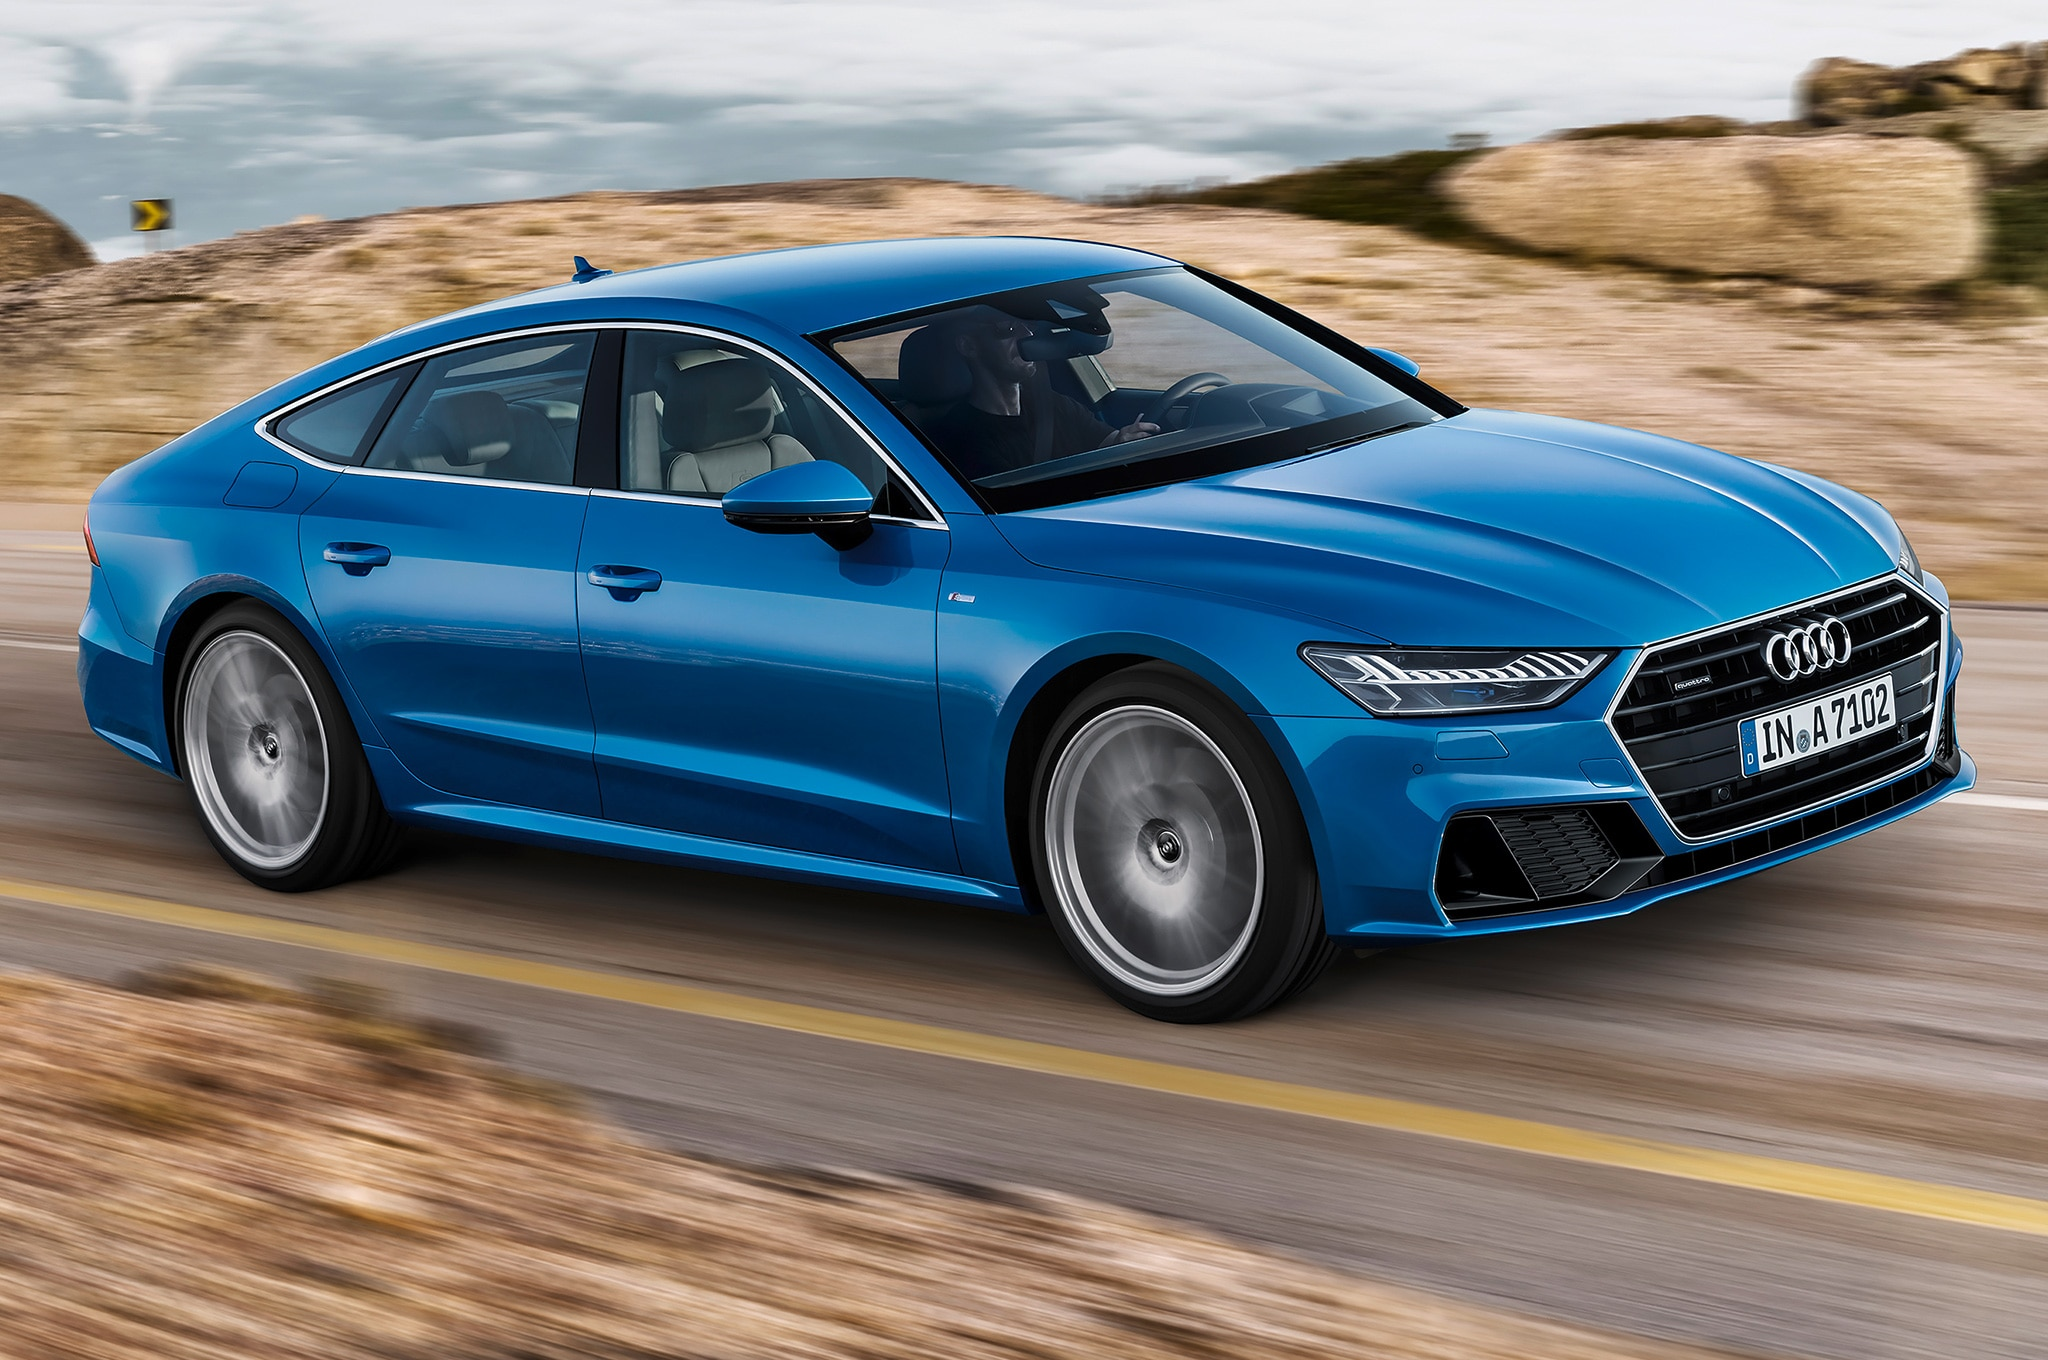 2019 Cars: Seven Awesome Features Of The Audi Q8 Concept